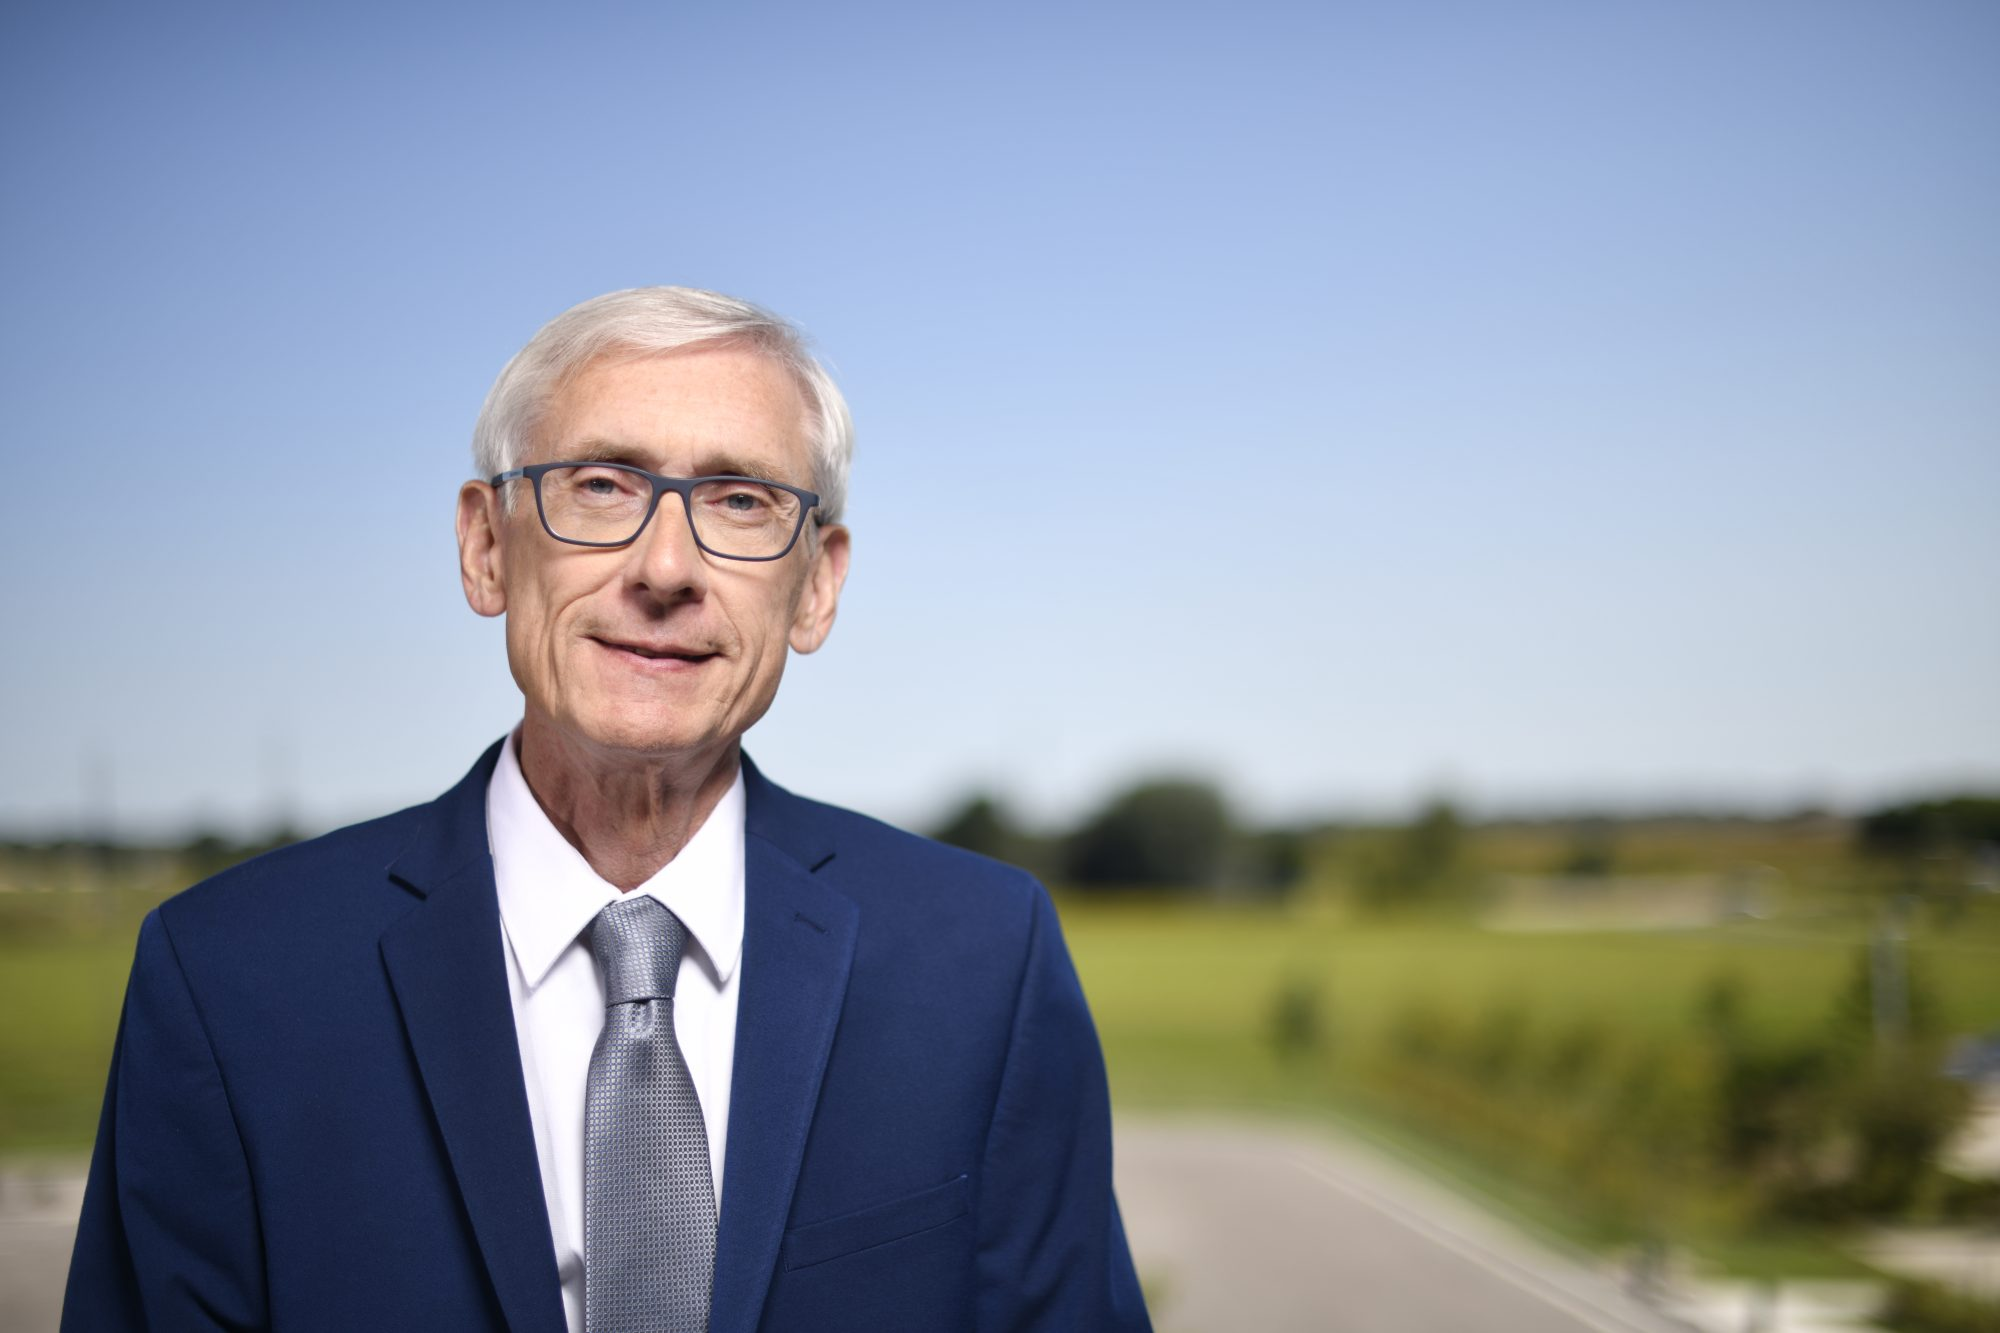 Gov. Evers Signs Executive Order #35 Declaring a State of Emergency Due to Extreme Severe Weather